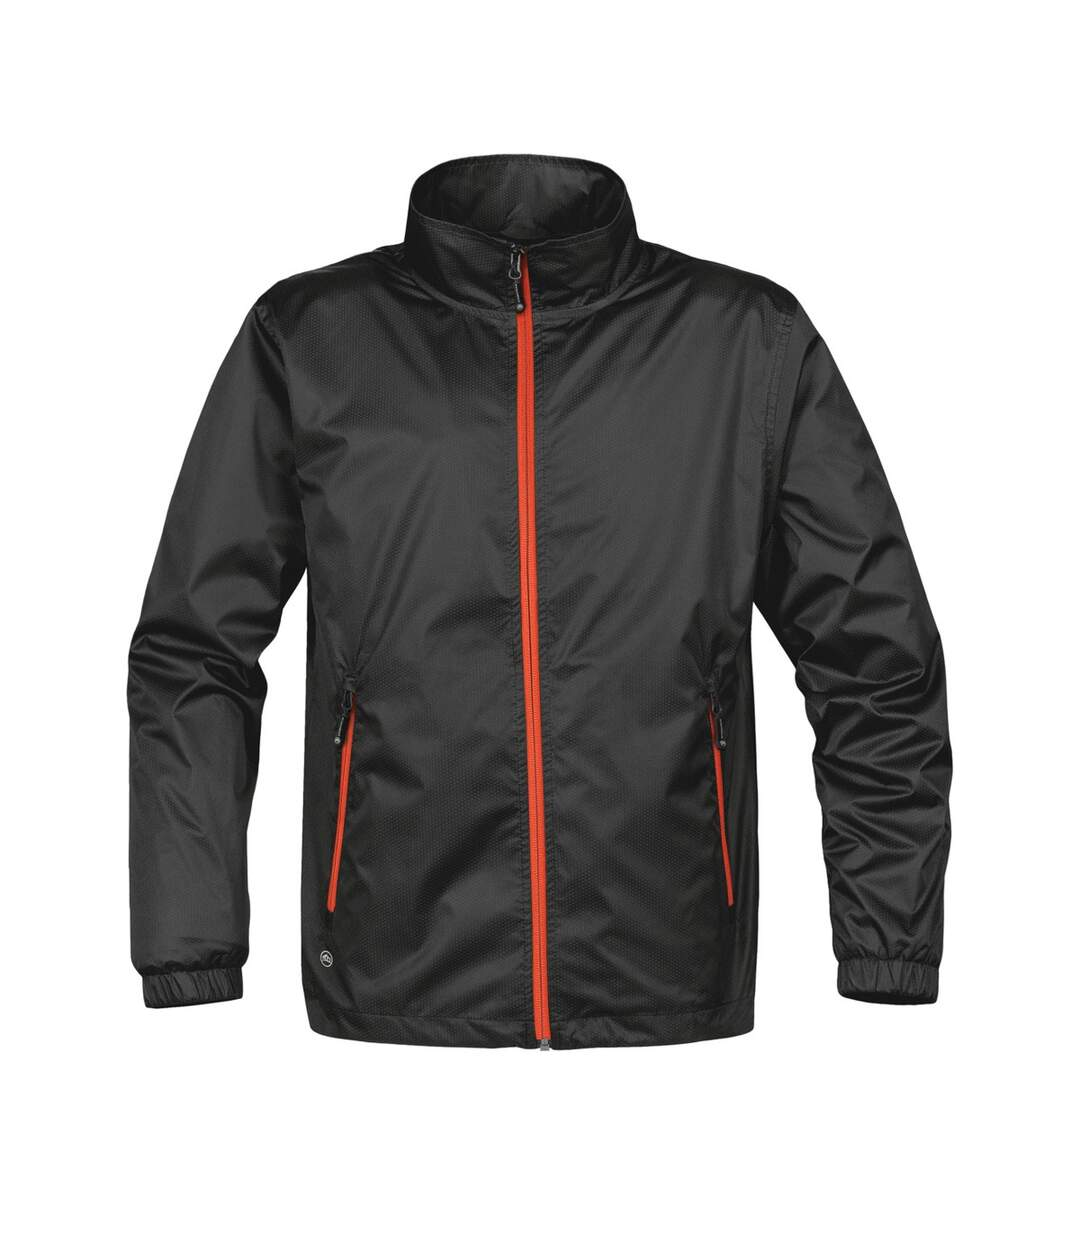 Stormtech Mens Axis Lightweight Shell Jacket (Waterproof And Breathable) (Black/Orange) - UTBC3070